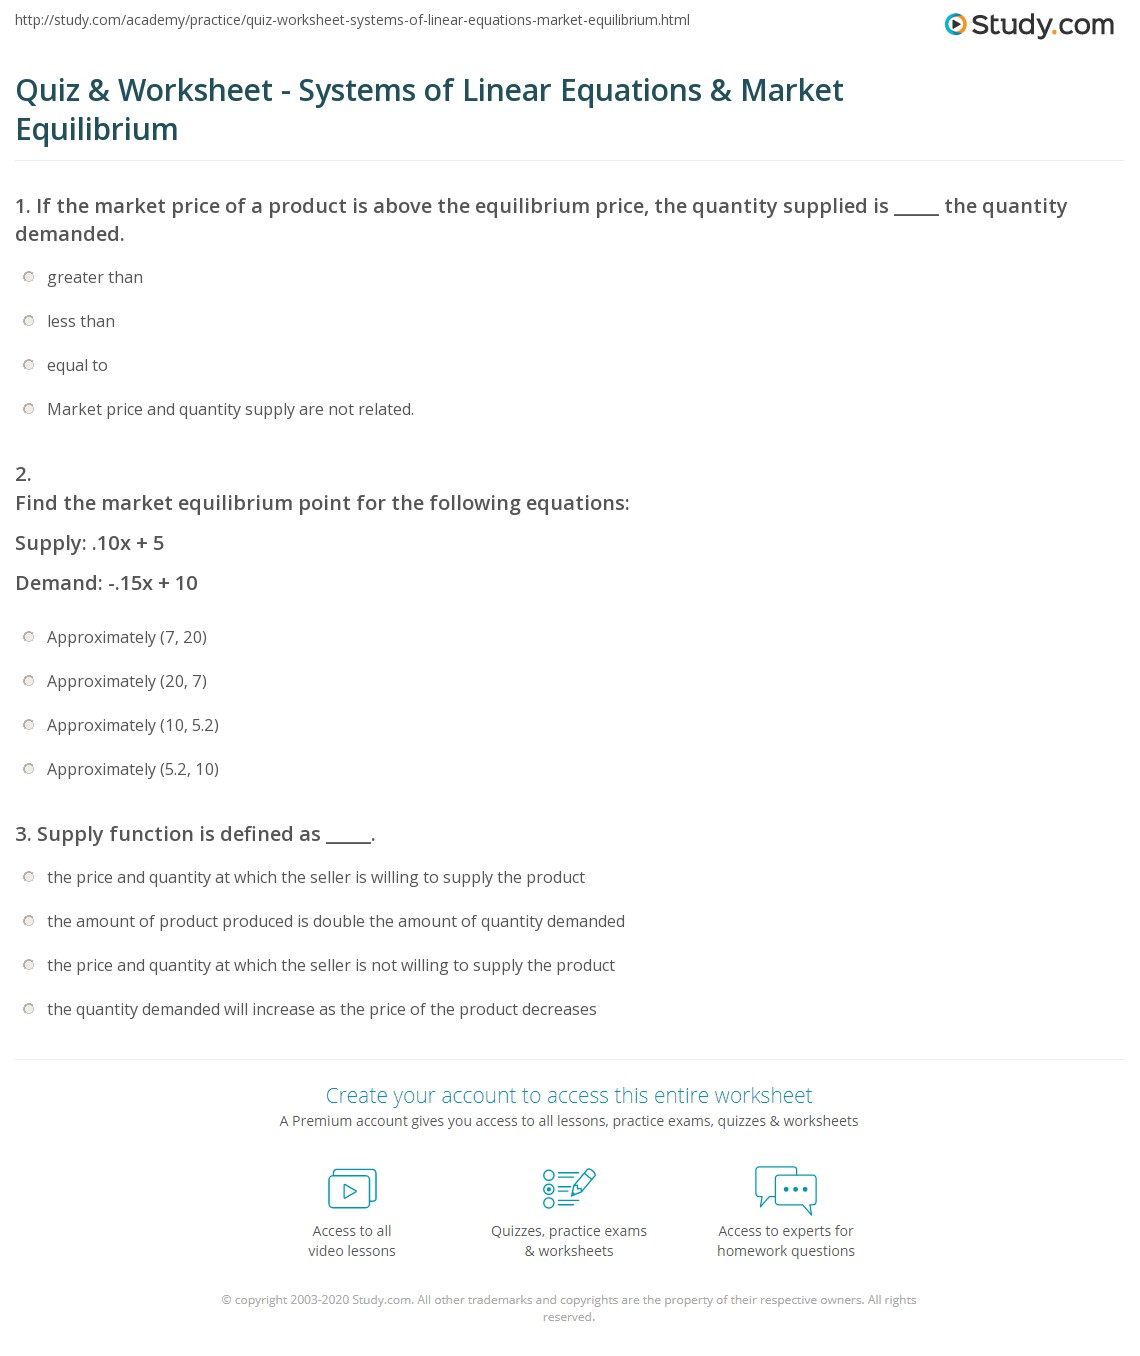 Equilibrium Calculations Worksheet